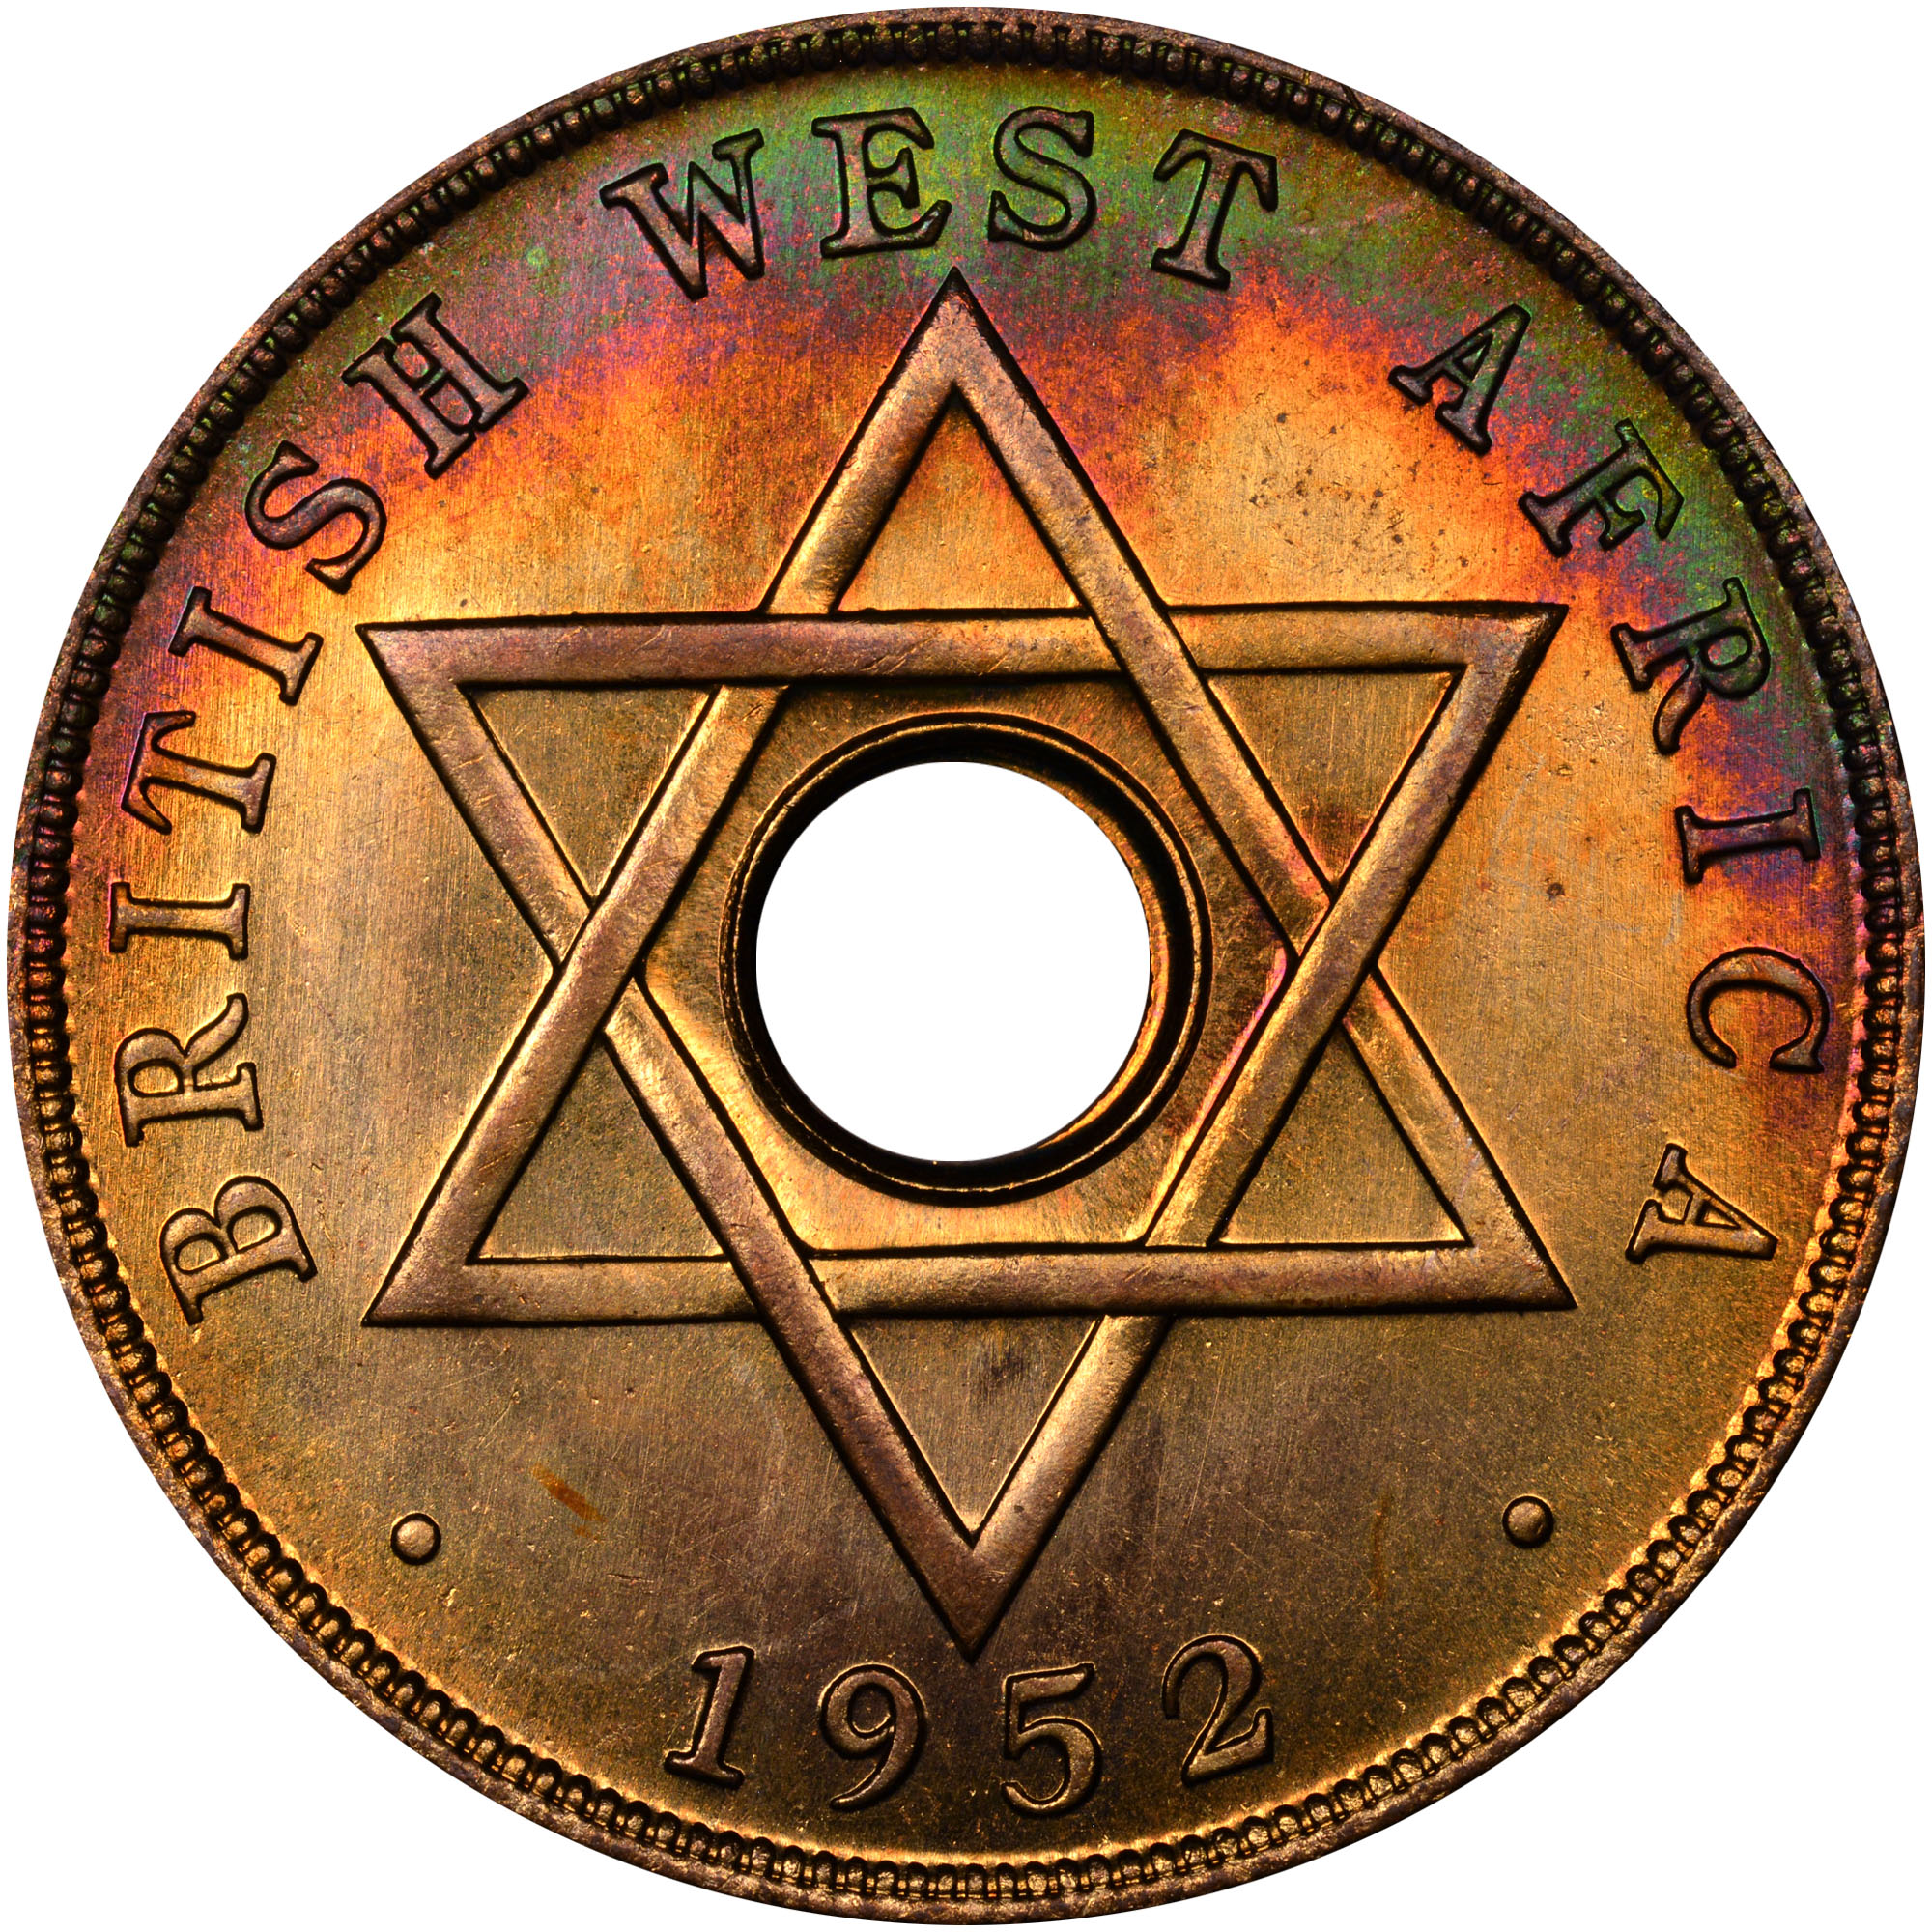 1952 British West Africa Penny reverse